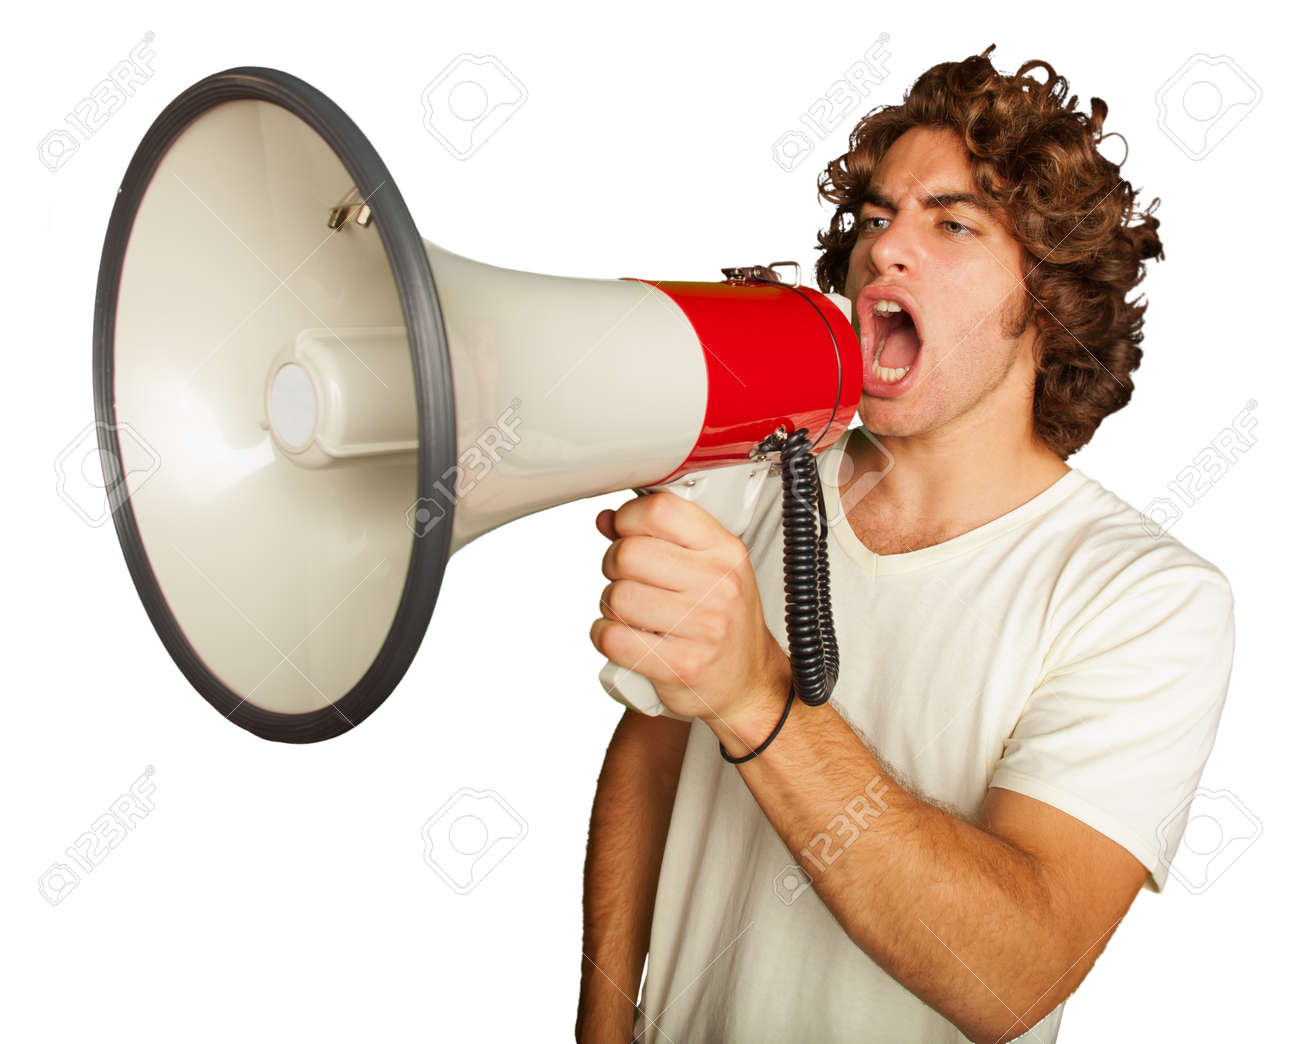 Portrait Of A Handsome Young Man Shouting With Megaphone On White Background - 16303955